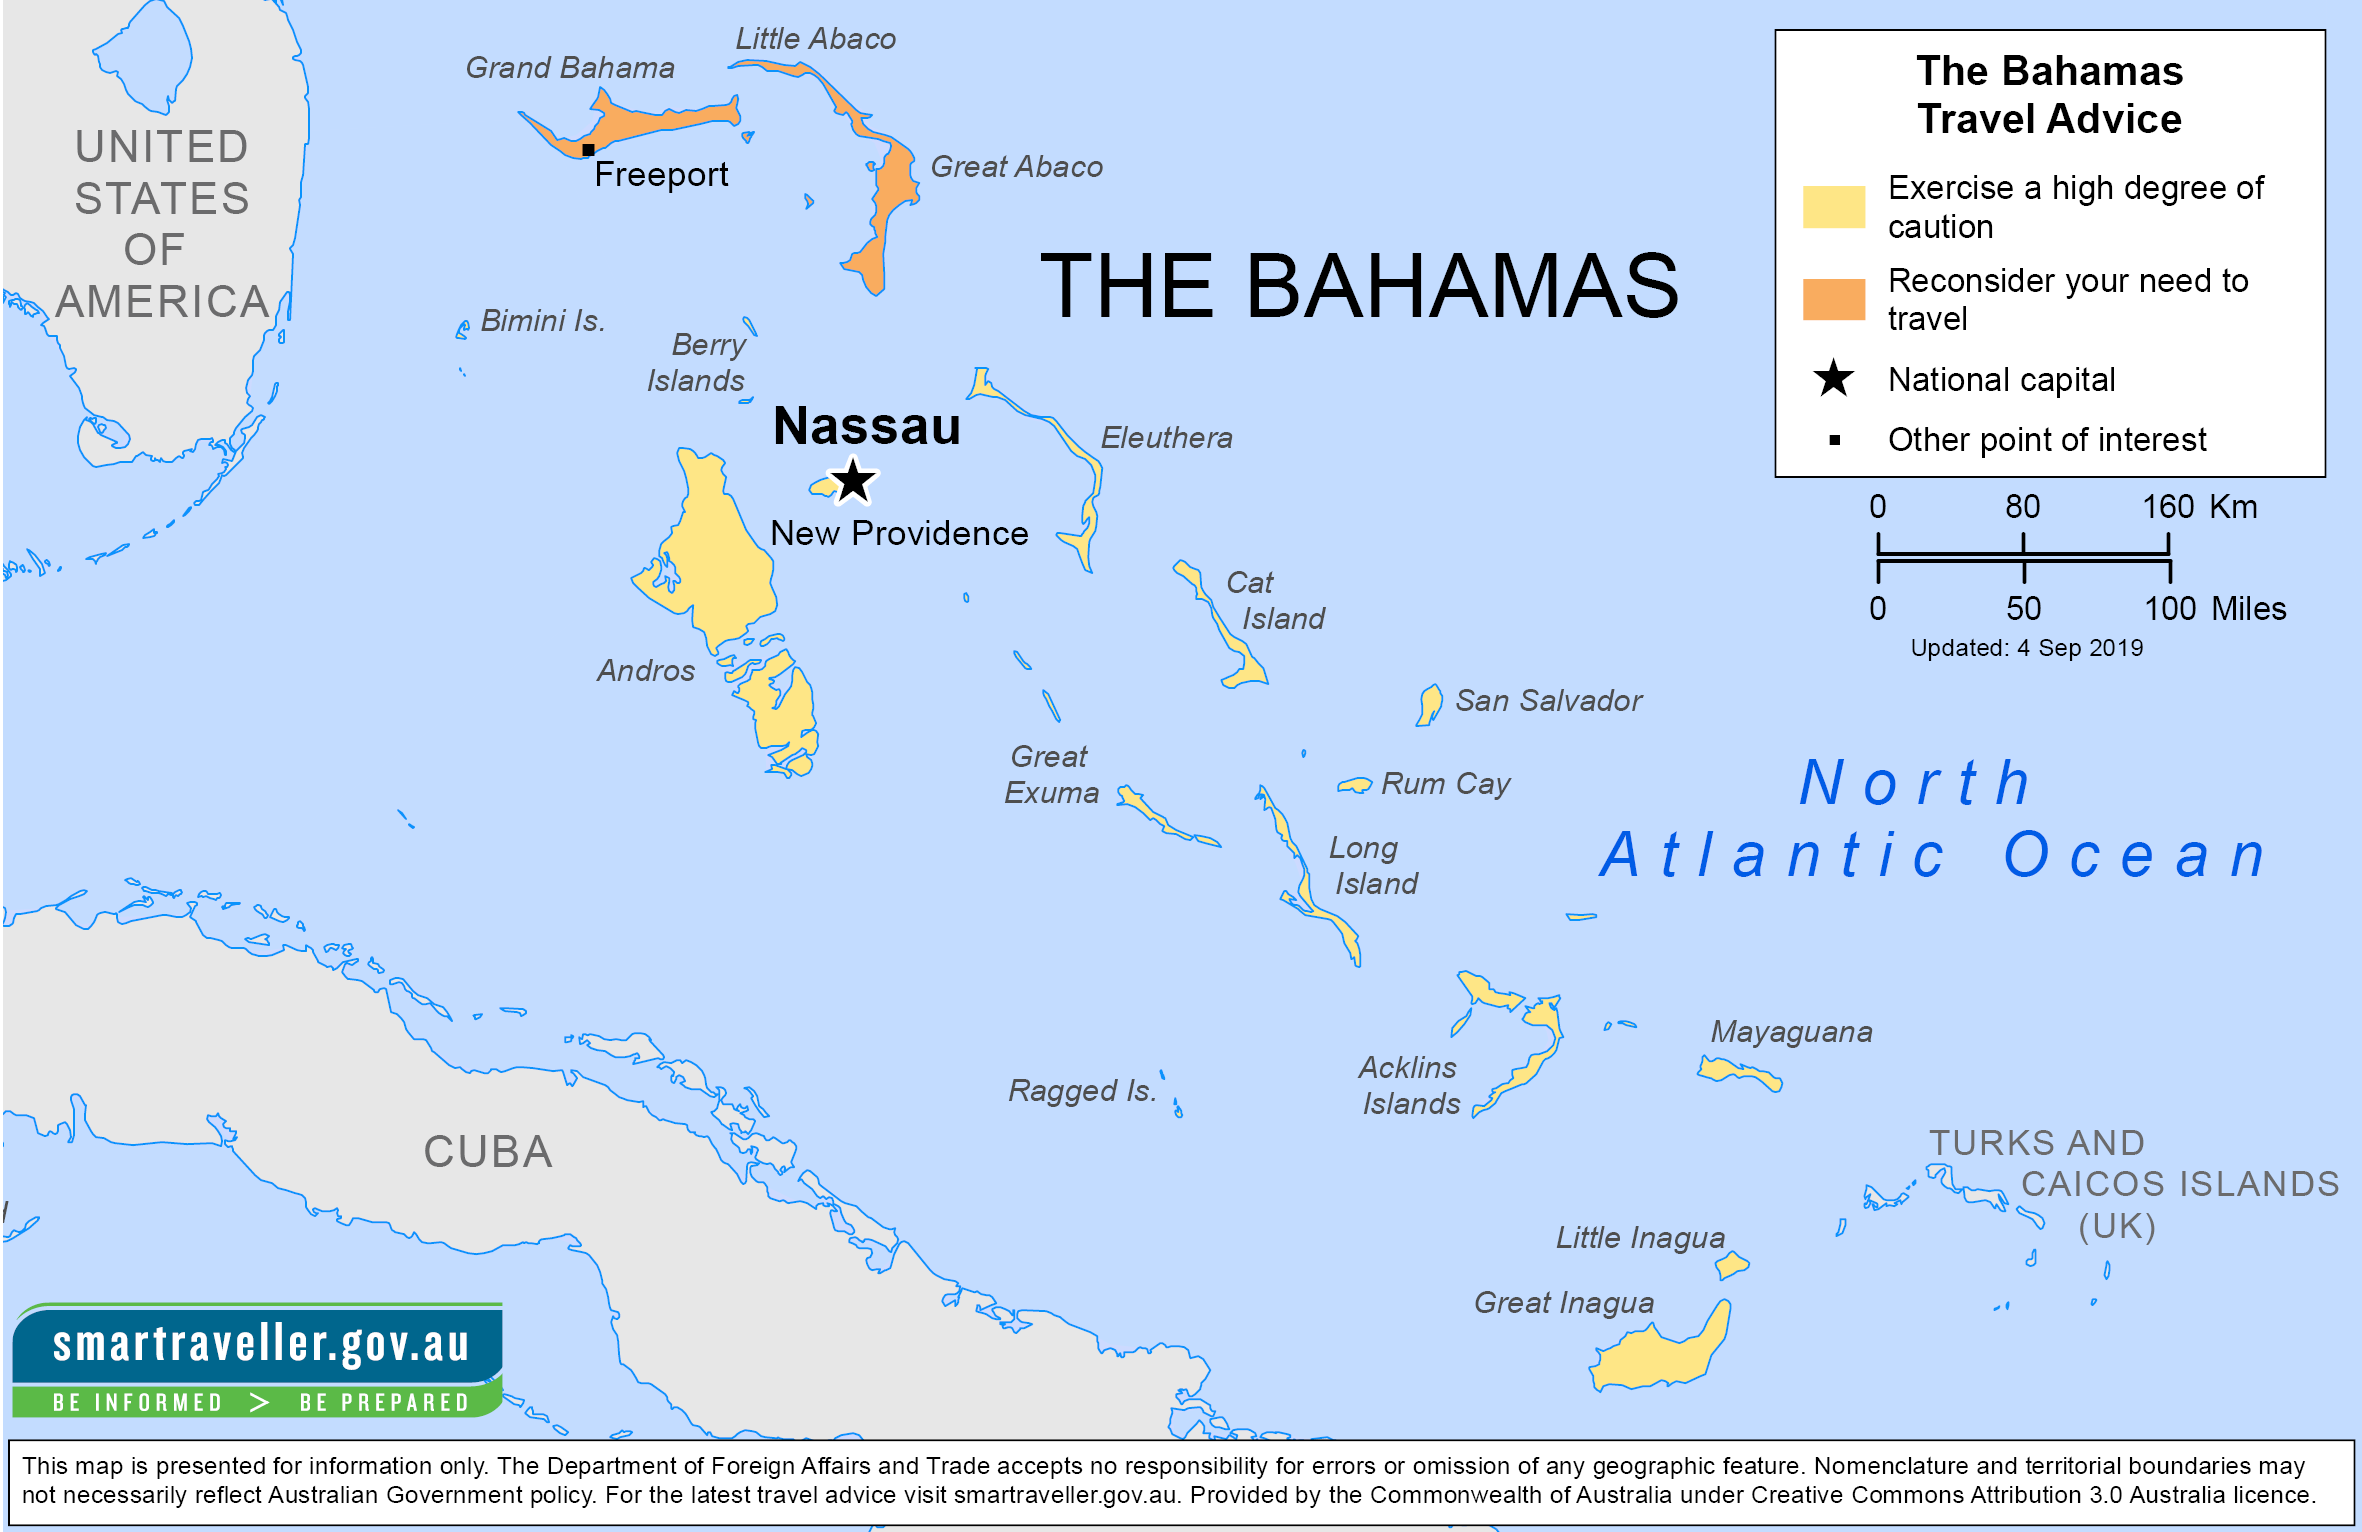 The Bahamas Traveler Information - Travel Advice